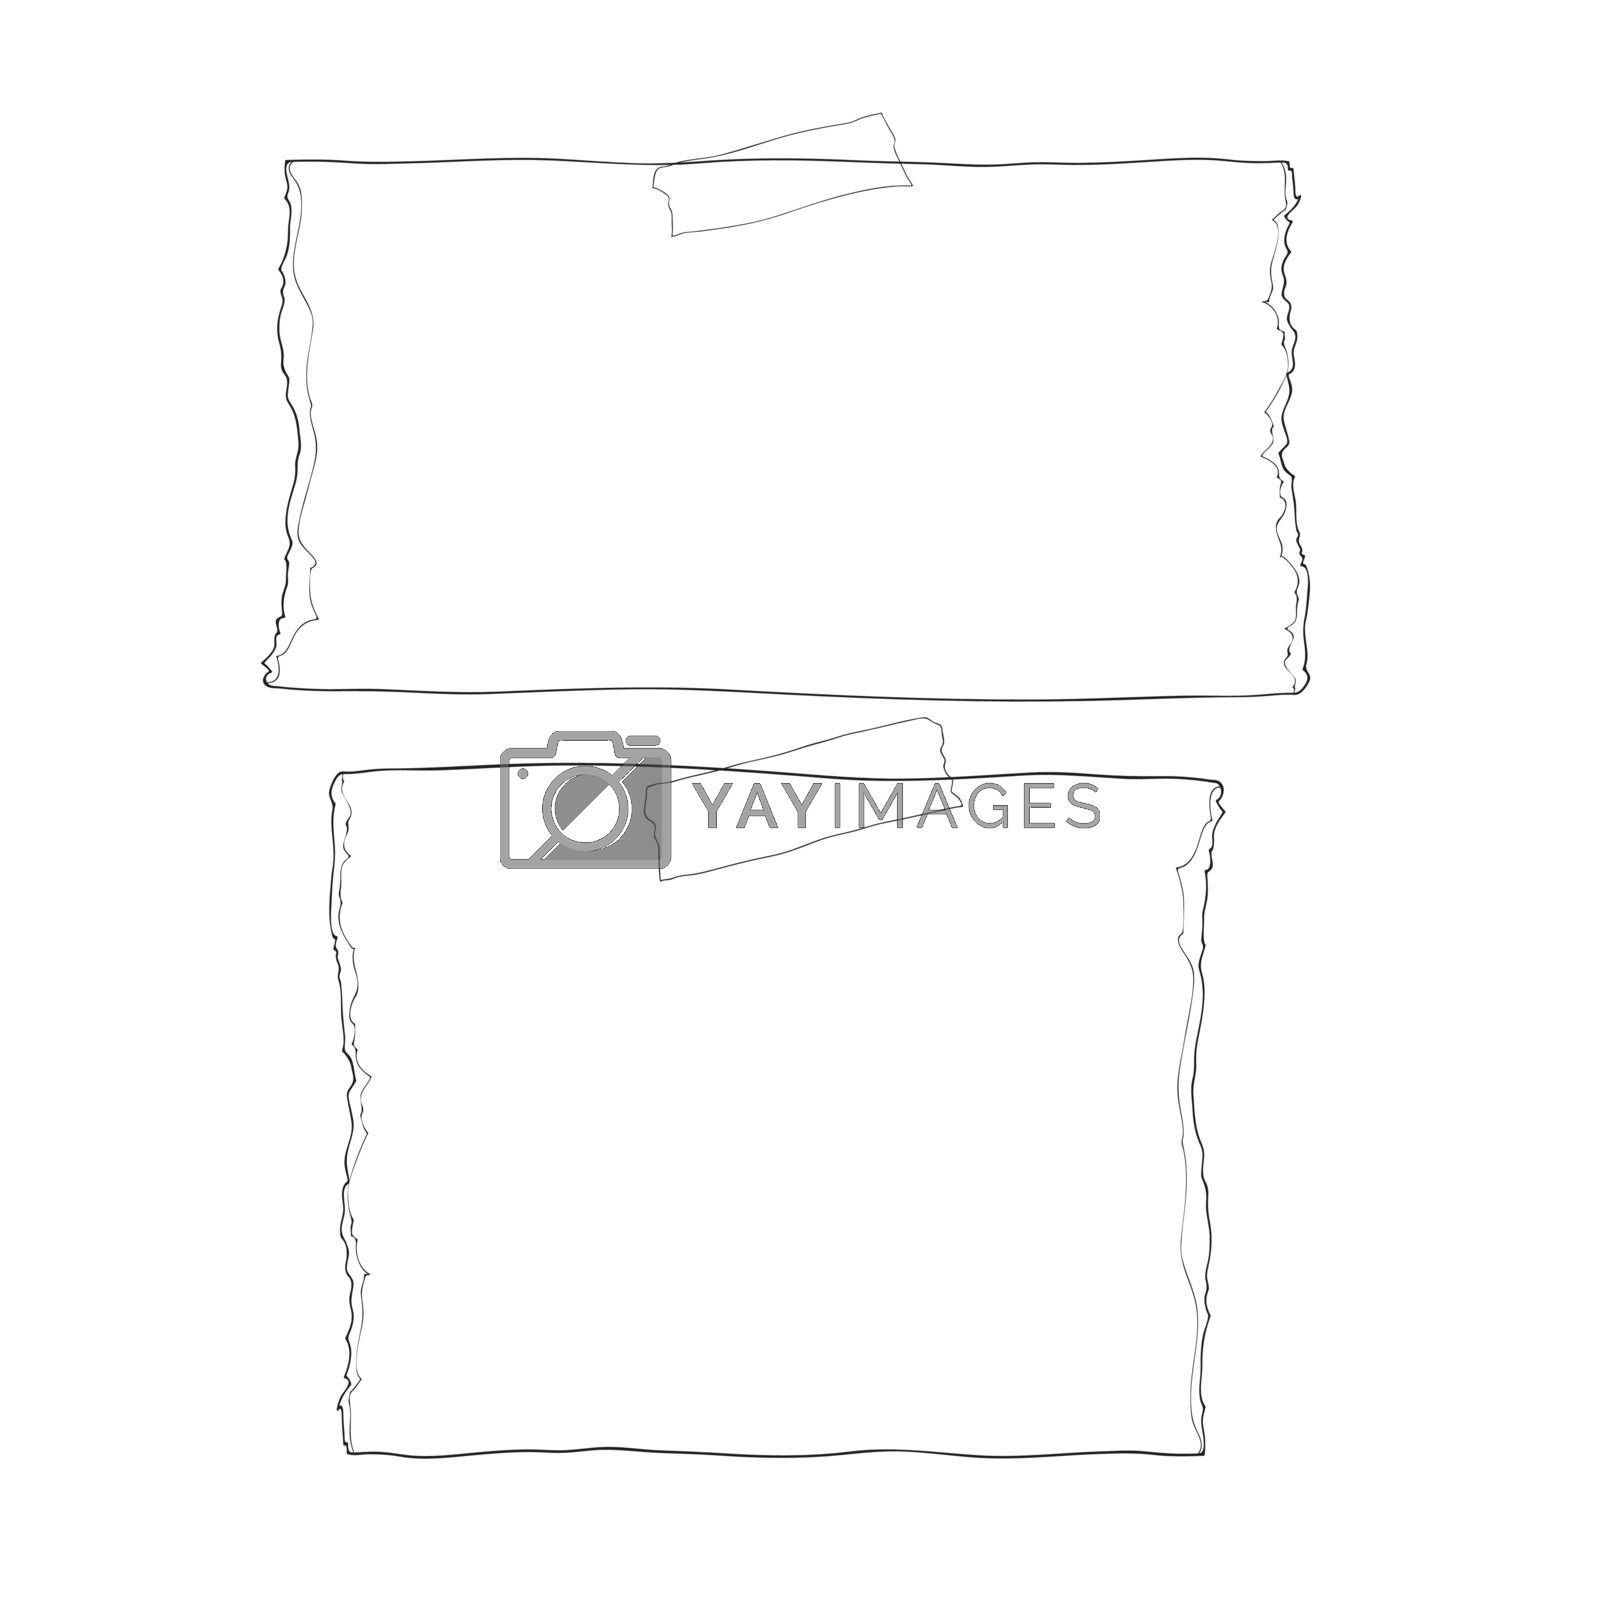 Ripped notebook paper hand drawn stuck wiht sticky tape cute line art Vector illustration